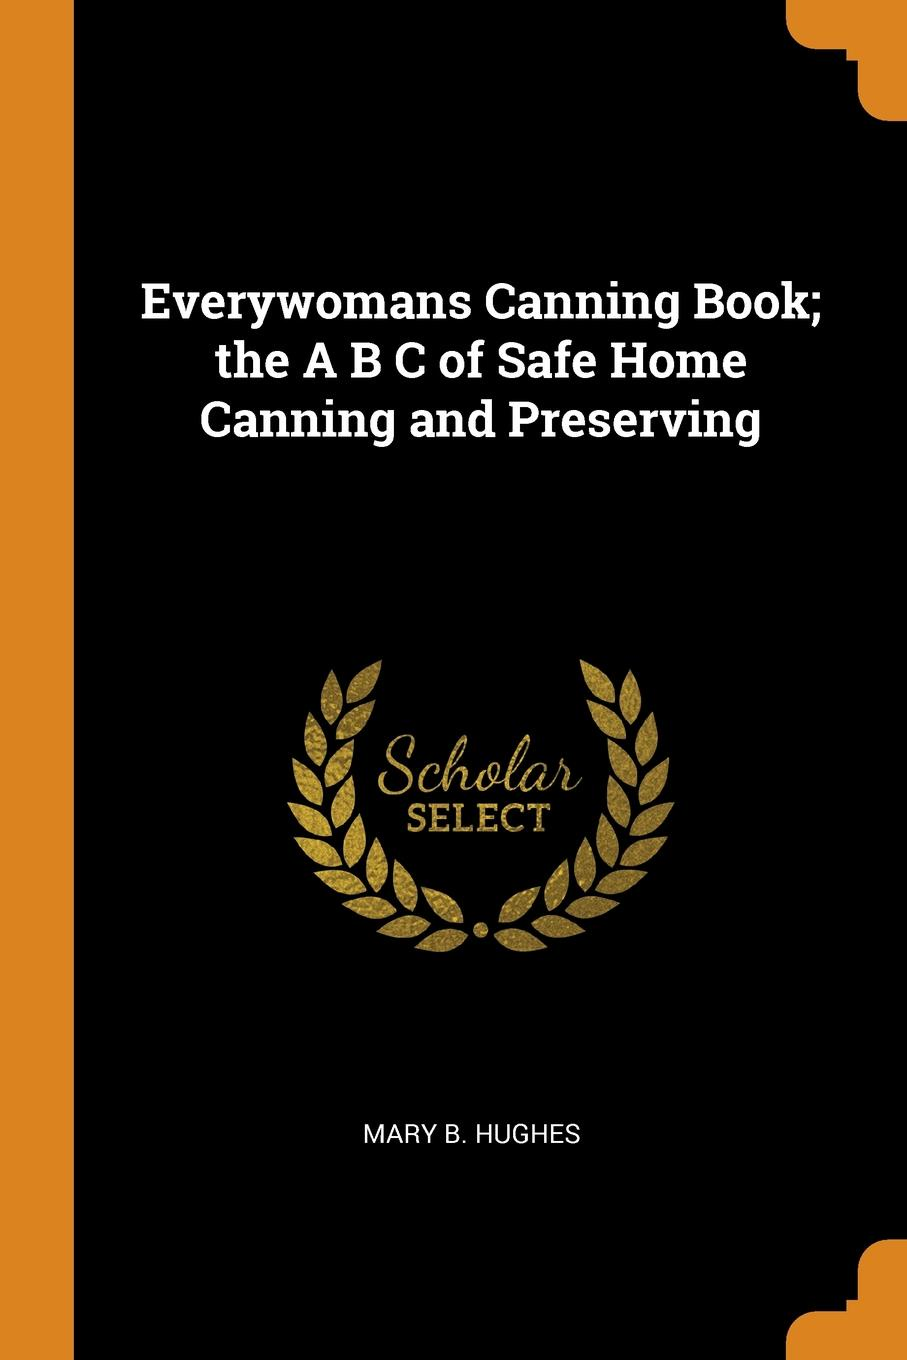 Mary B. Hughes Everywomans Canning Book; the A B C of Safe Home Canning and Preserving